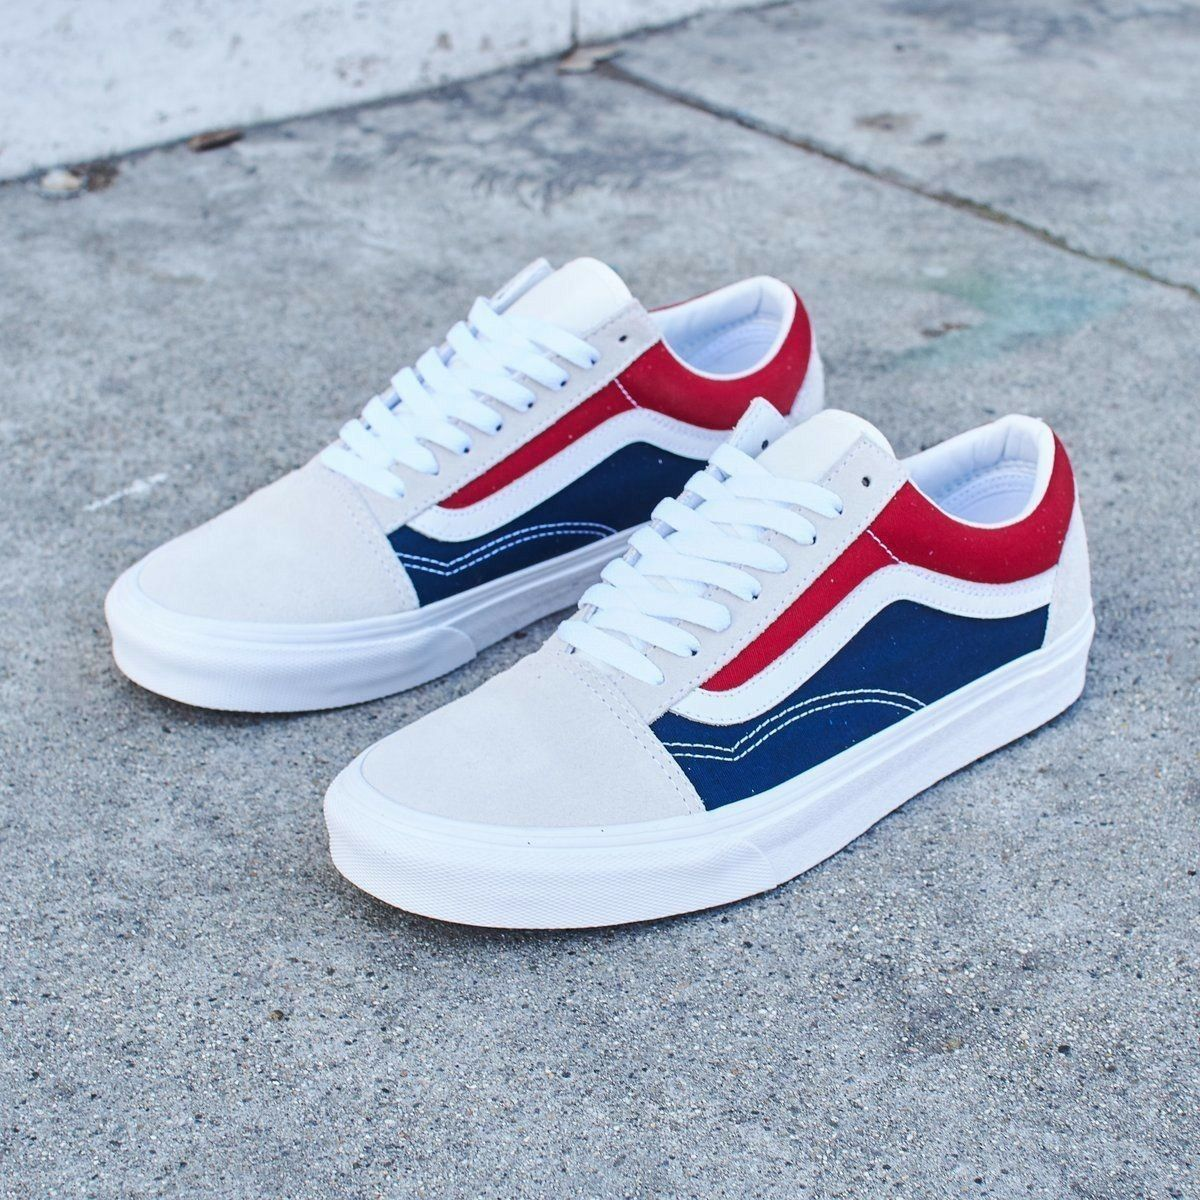 72c867cedf The Vans Old Skool